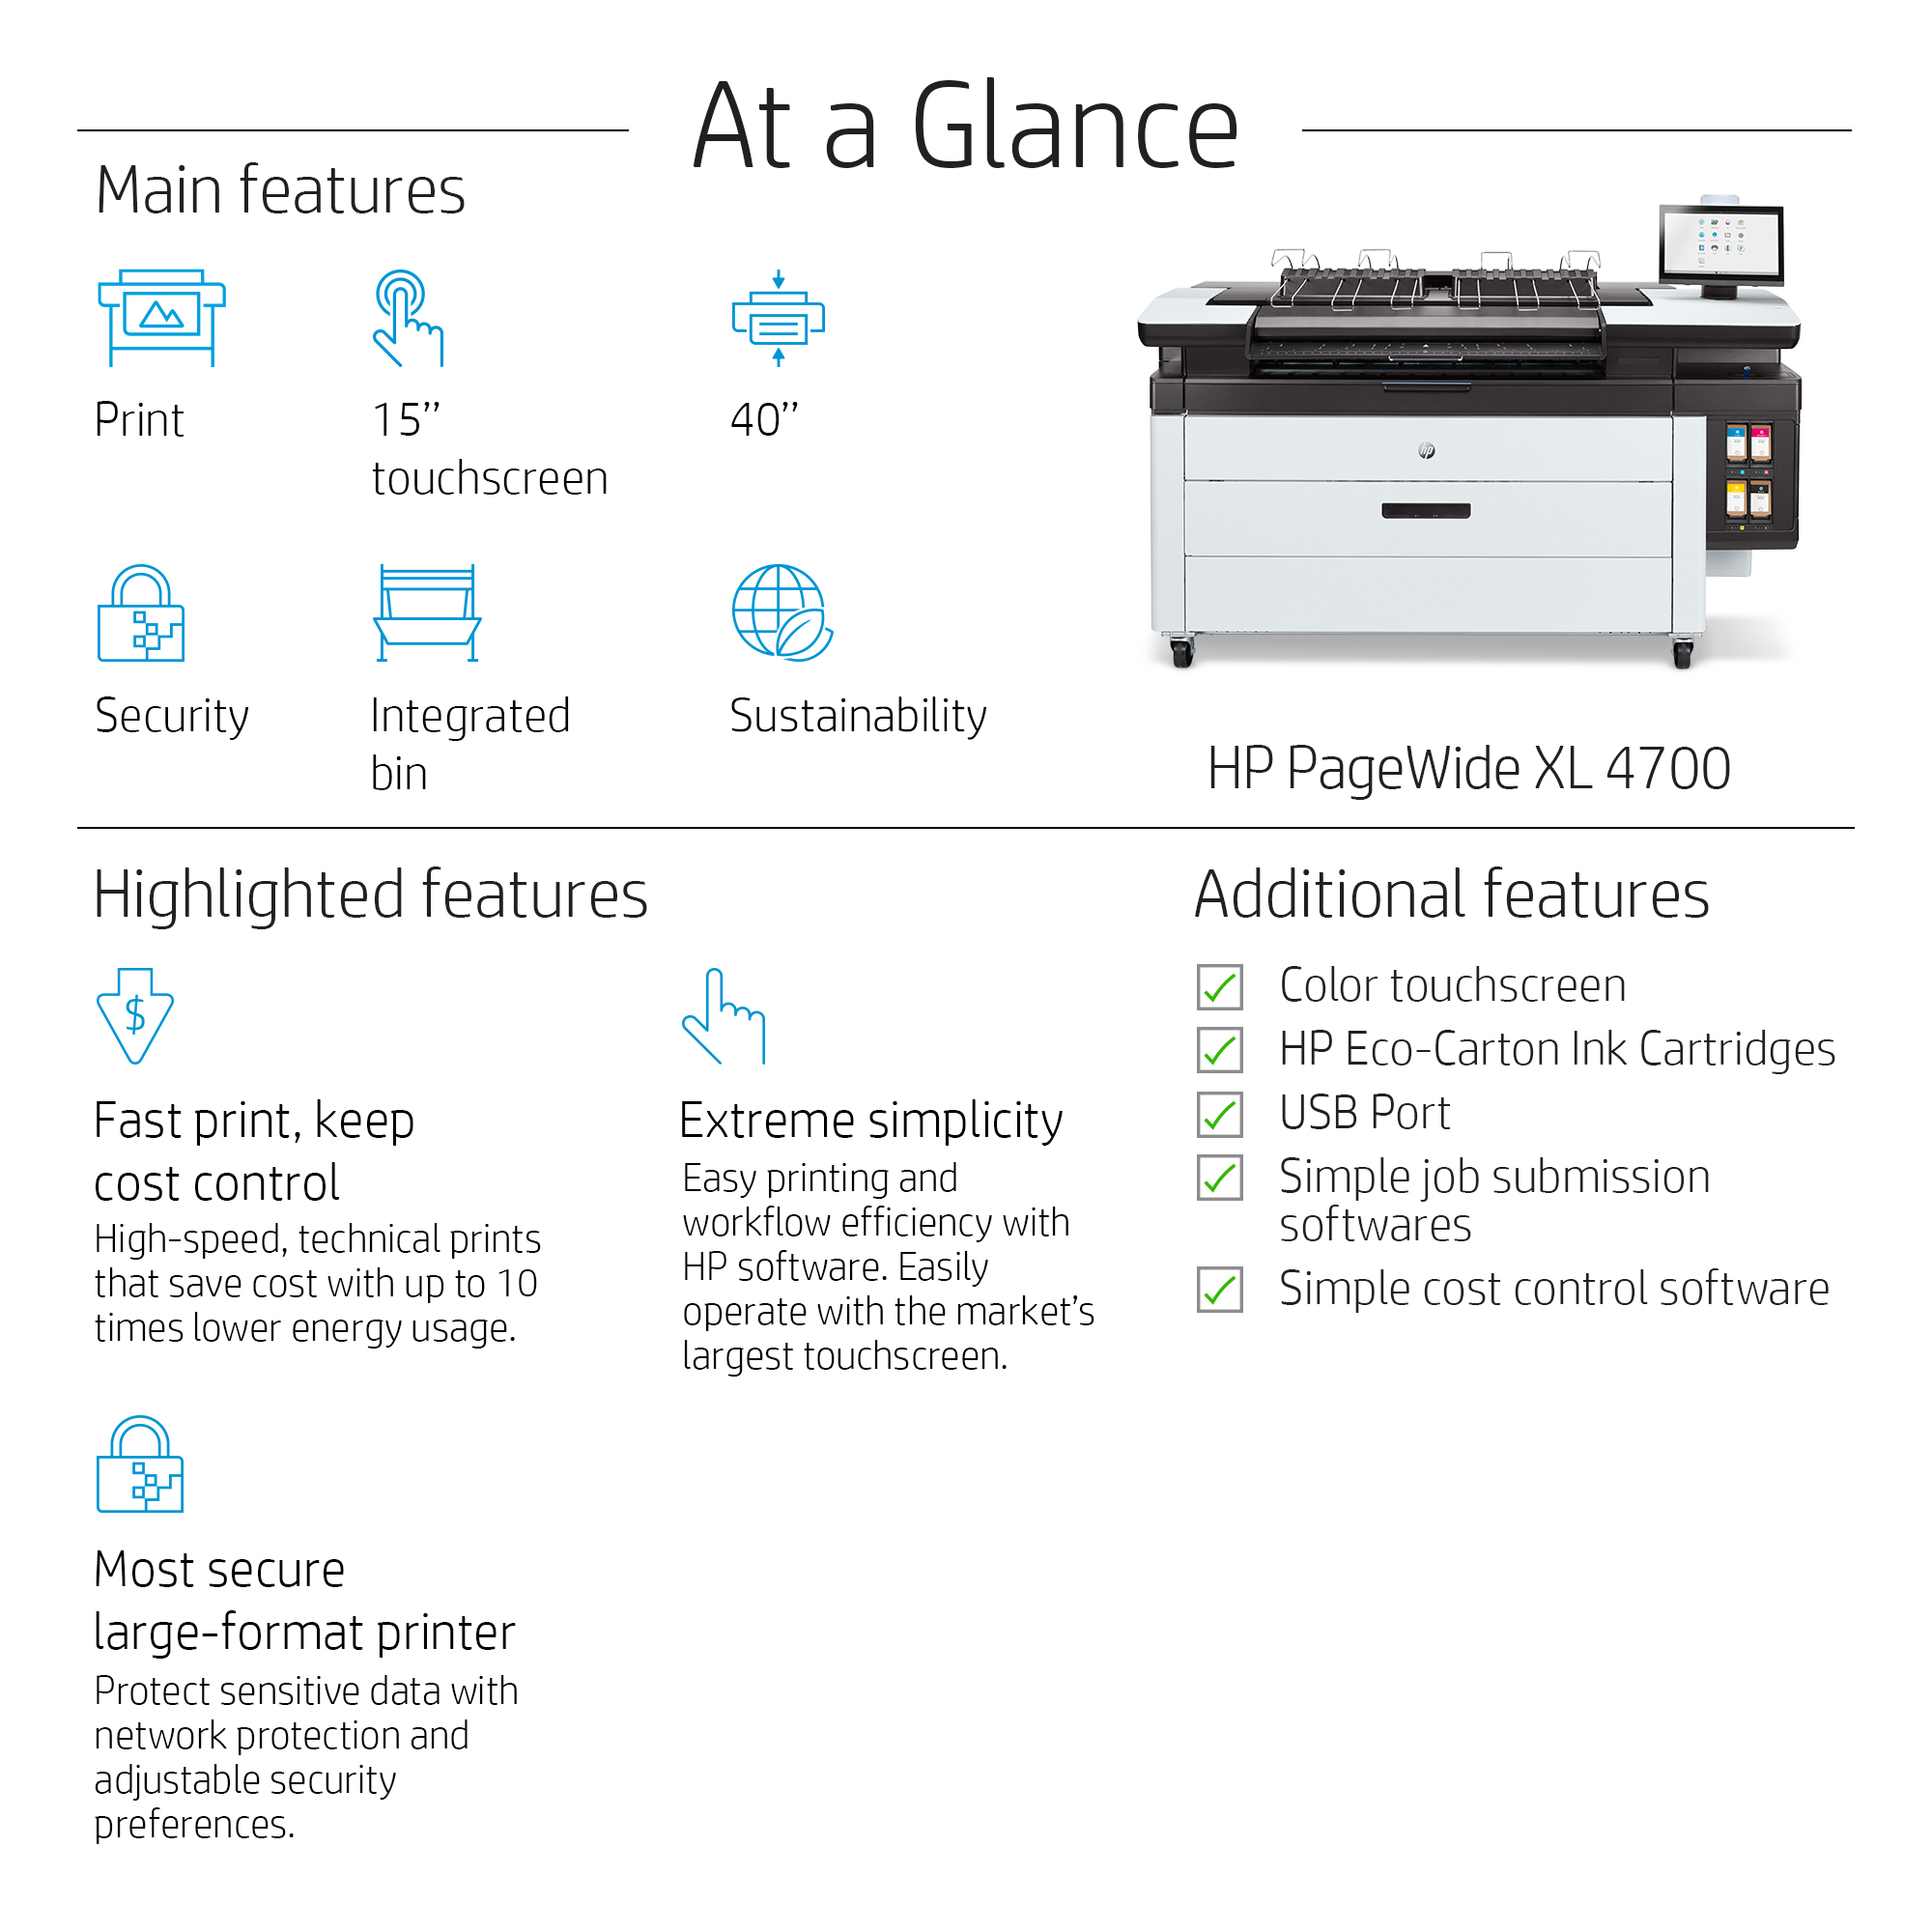 HP_PageWide_XL_4700_At_a_glance